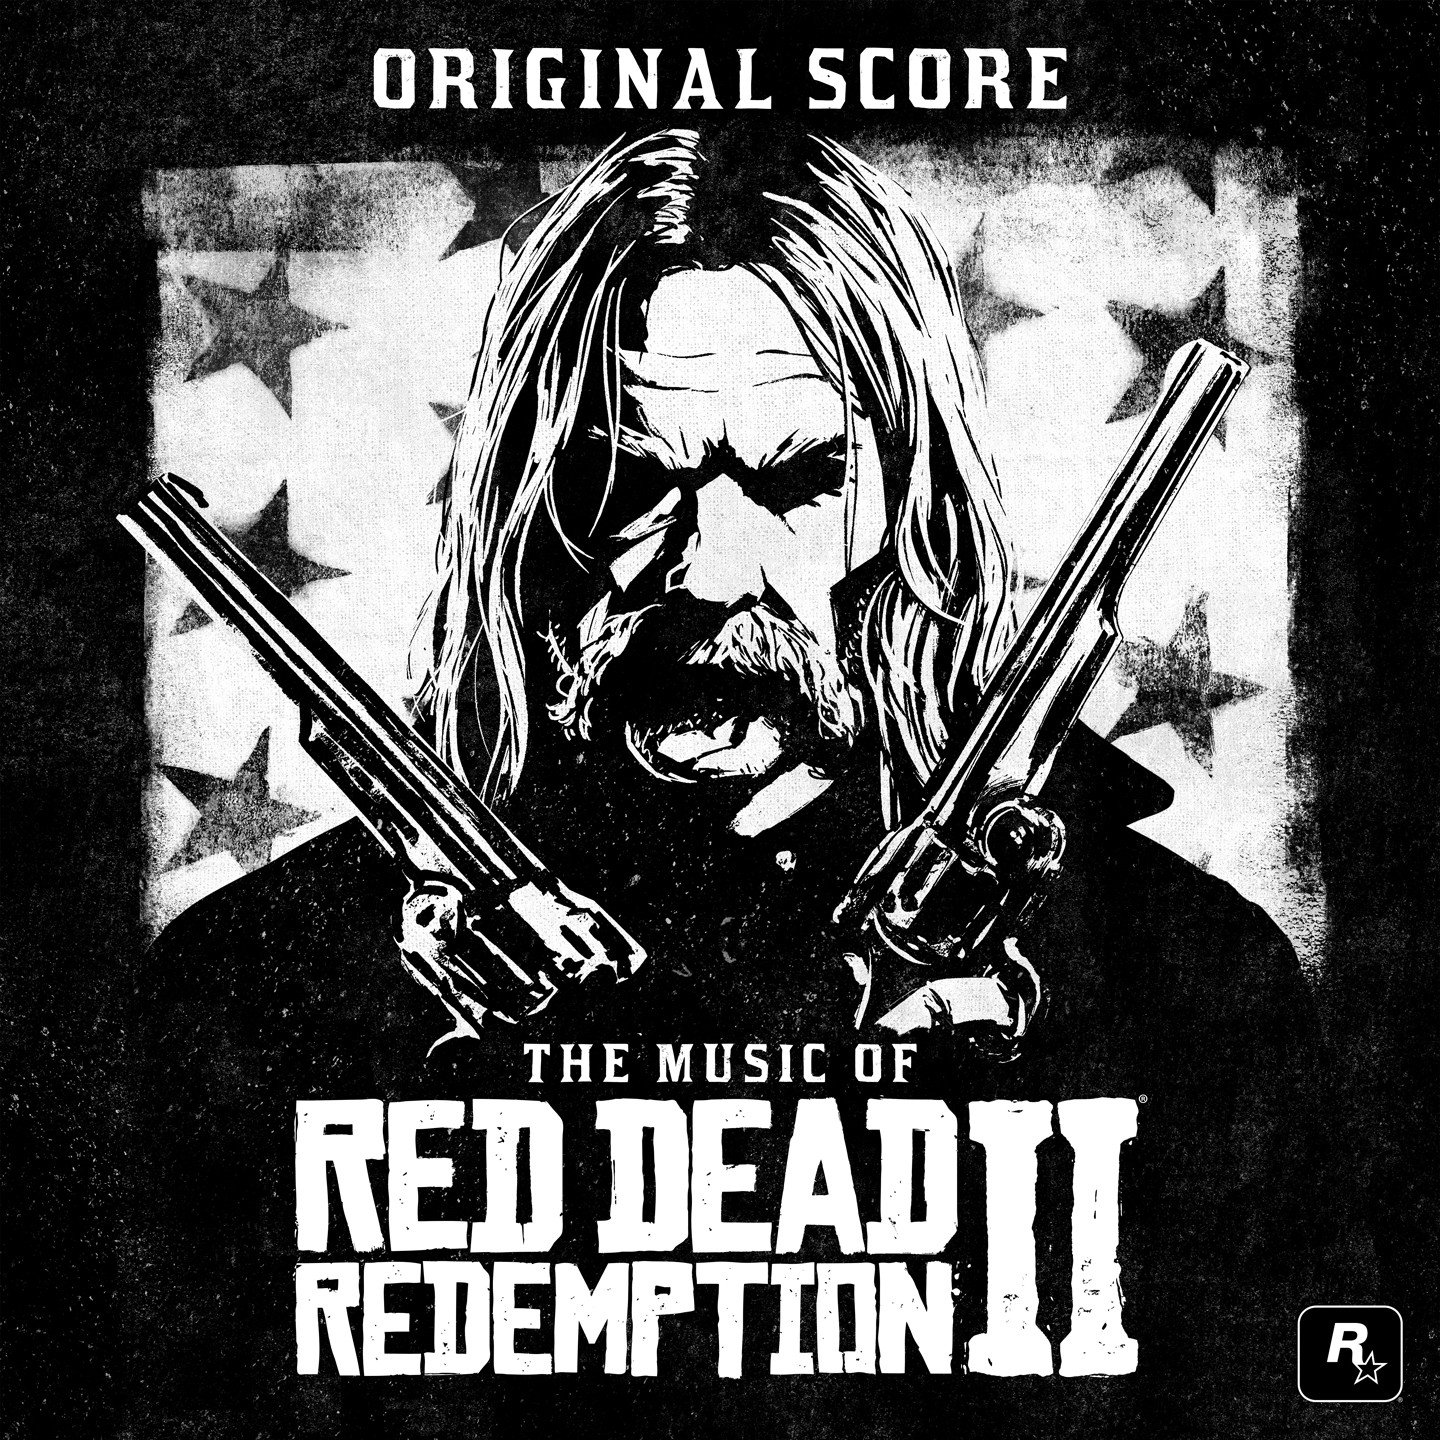 The Music Of Red Dead Redemption 2: Original Score